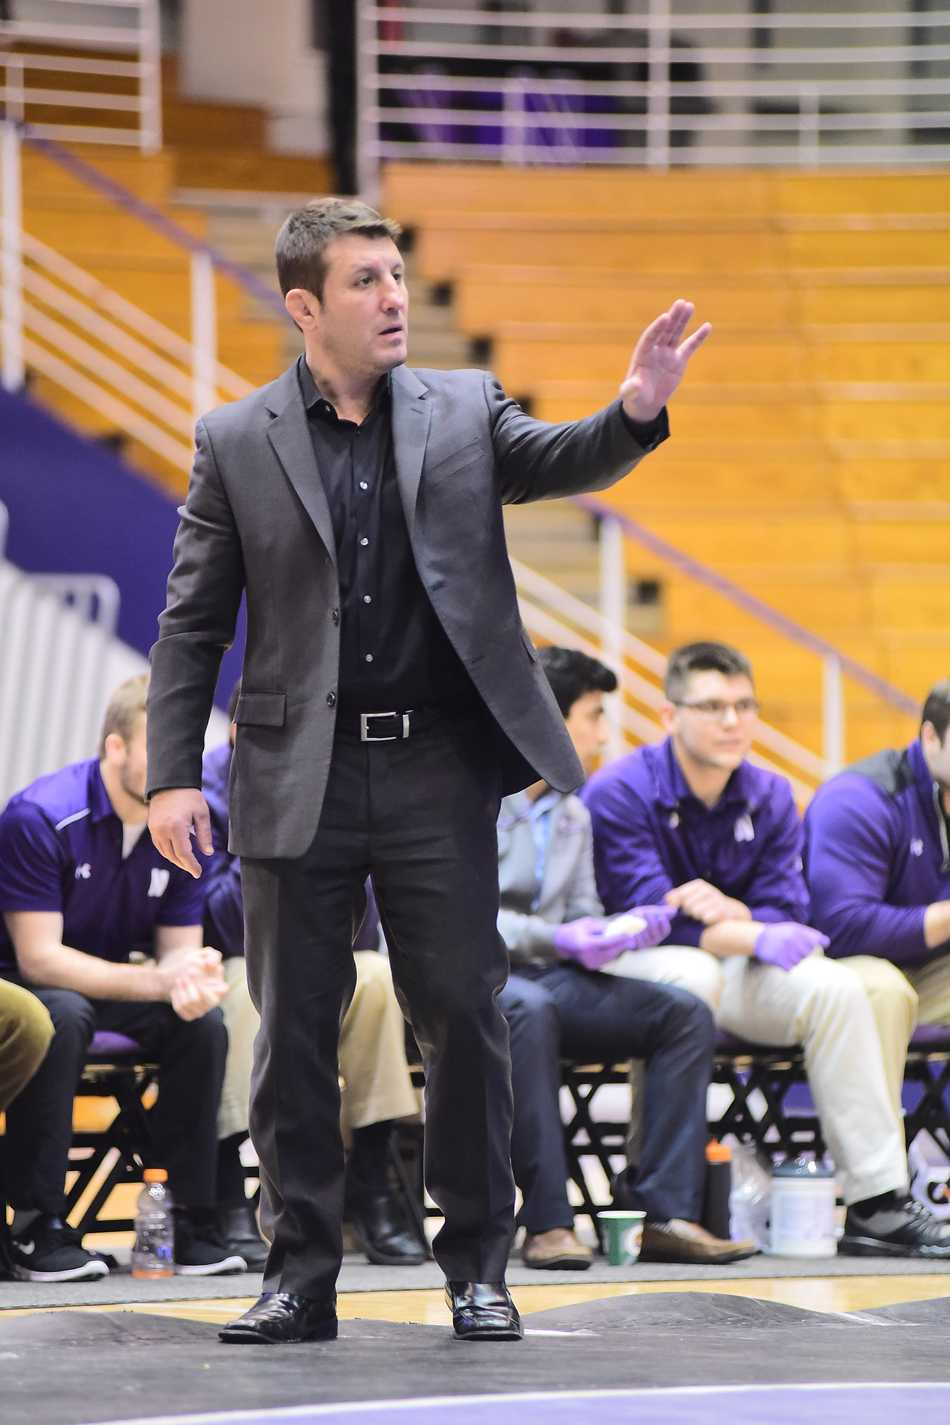 Drew Pariano dictates the action. Northwestern's coach is not one to beat around the bush, as he takes a blunt approach when instructing his wrestlers.